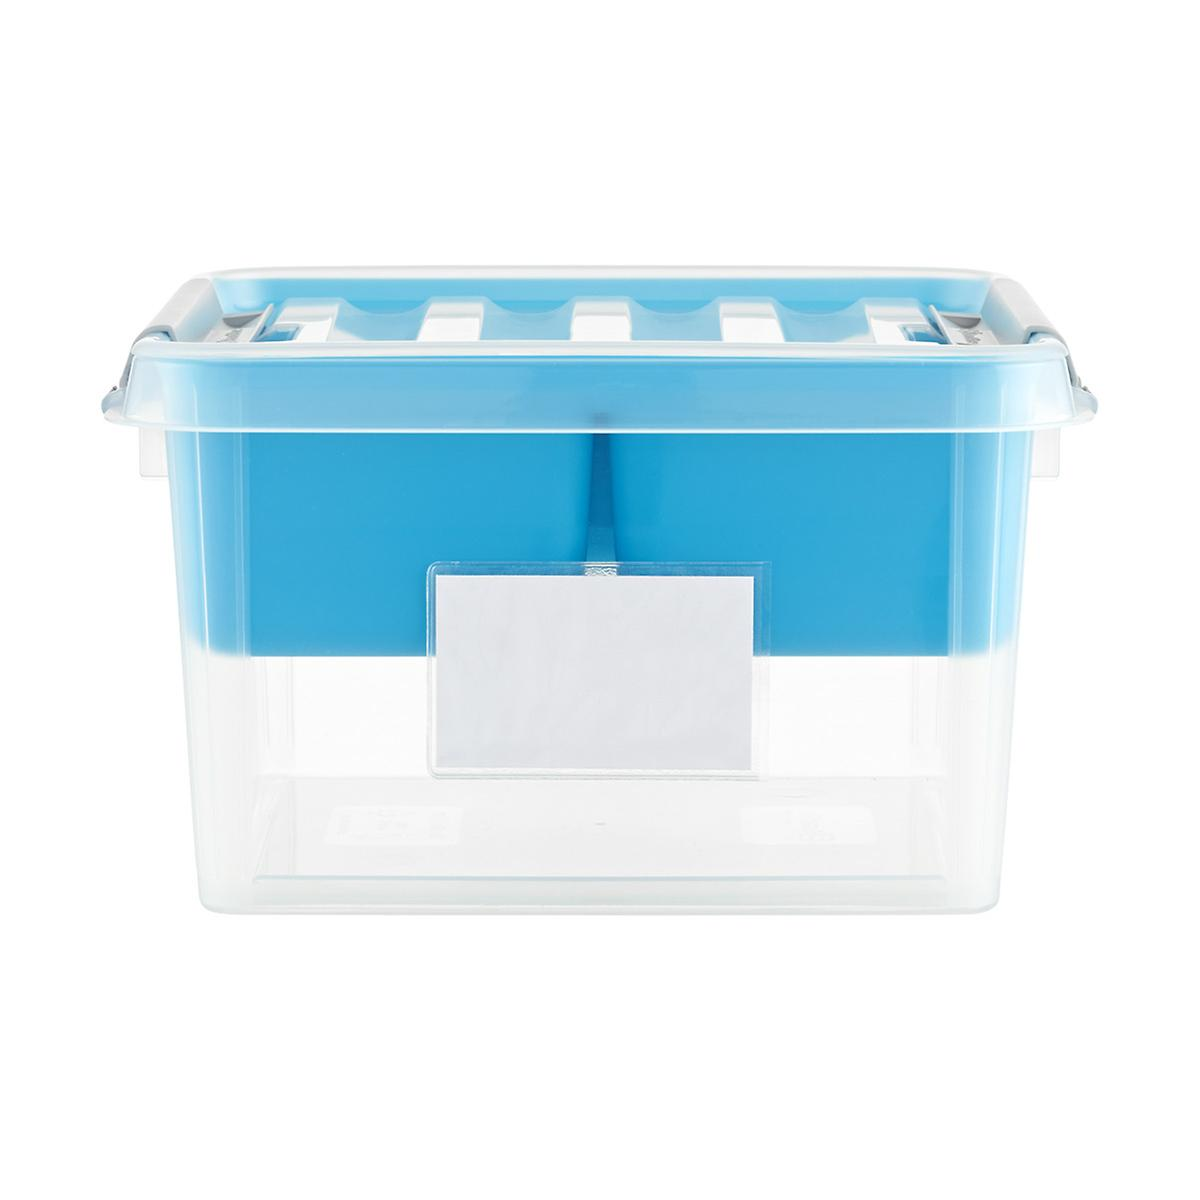 Adhesive Labels - Smart Store Adhesive Labels | The Container Store